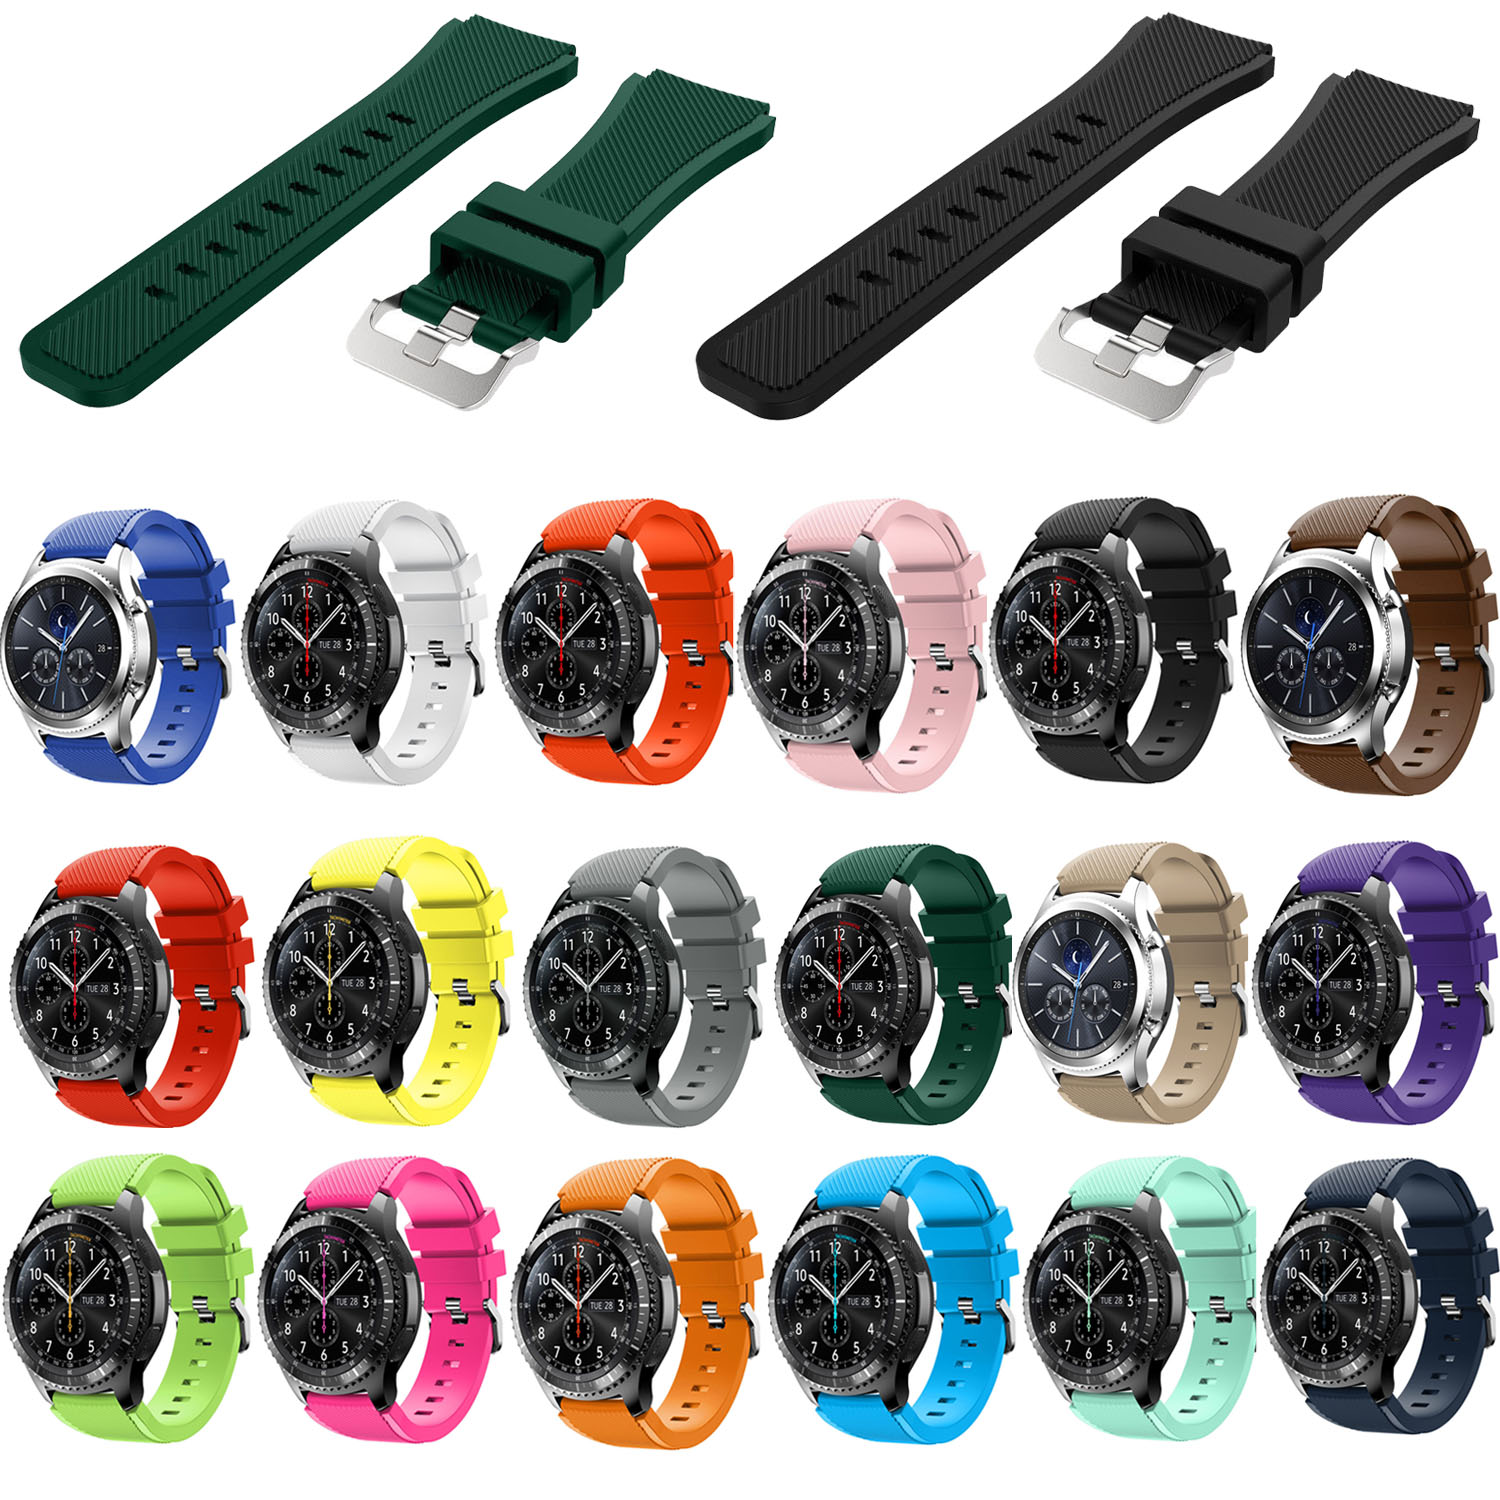 18 Colors Rubber Wrist Strap for Samsung Gear S3 Frontier Silicone Watch Band for Samsung Gear S3 Classic Bracelet Band 22mm цена